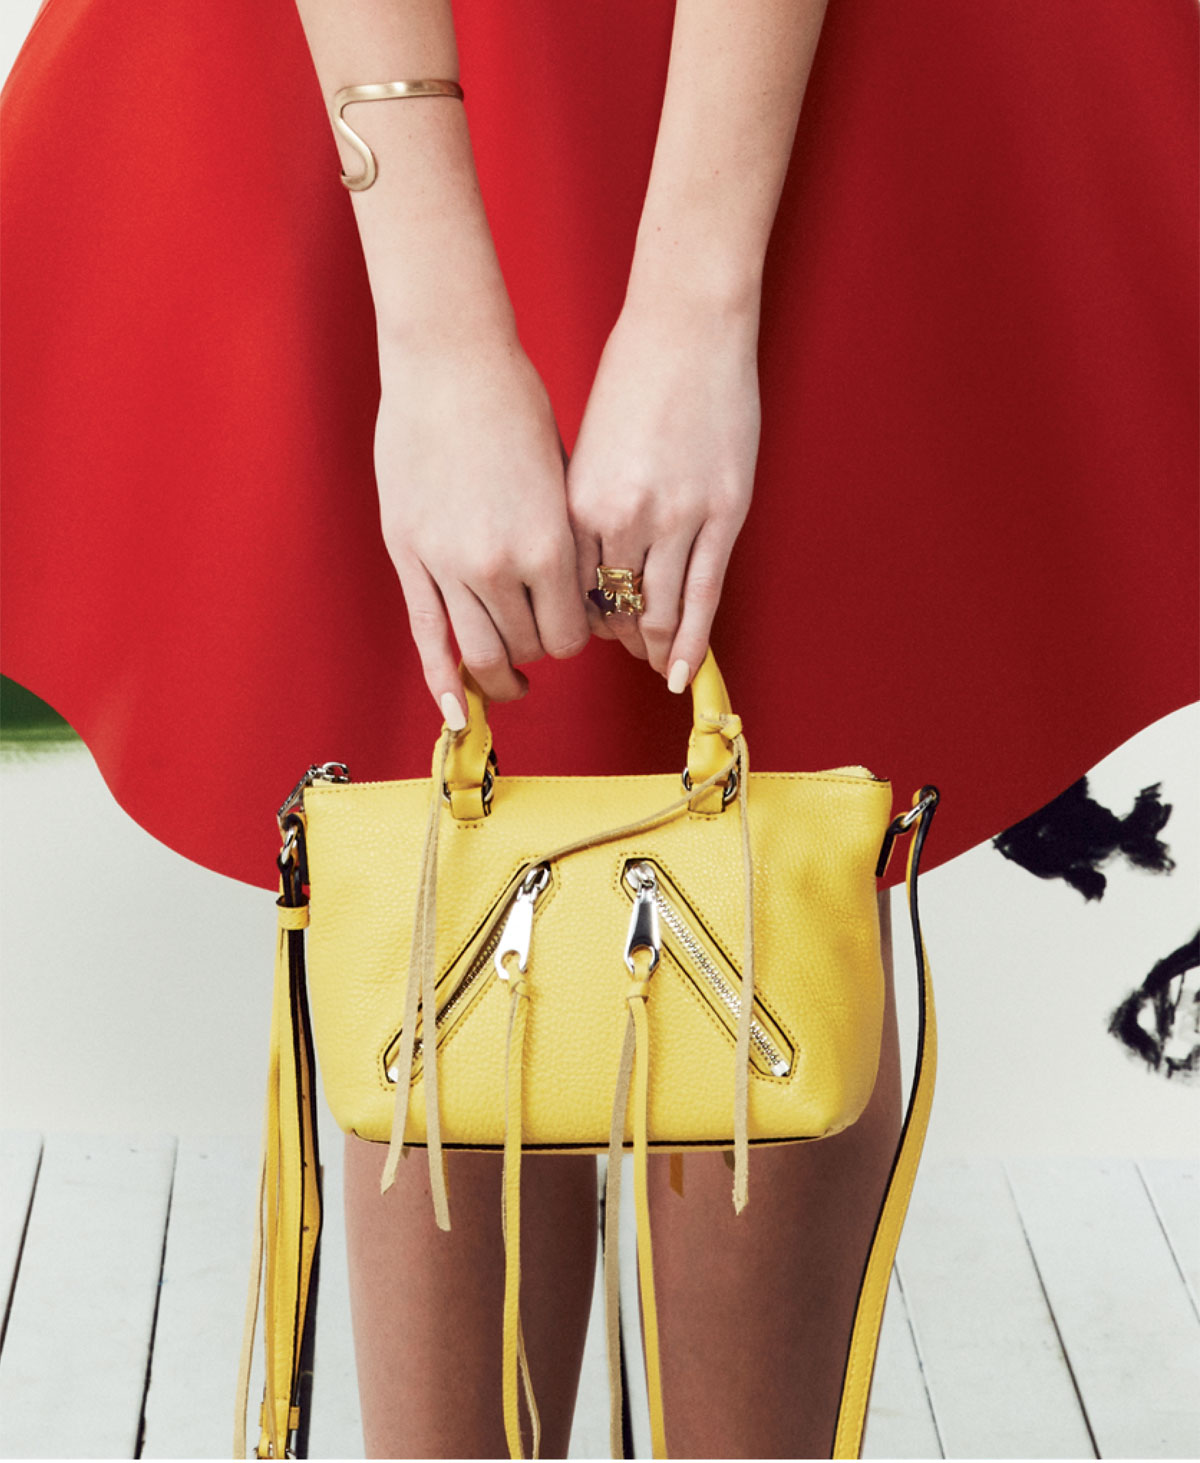 """Rebecca Minkoff """"Micro Moto Satchel"""" in """"sunshine,"""" $195 at Shoes on King; Golden Stella brushed gold bracelet, $132 at Beckett Boutique; and 14K gold and vermeil lemon quartz cluster cocktail ring, $265 at Croghan's Jewel Box."""